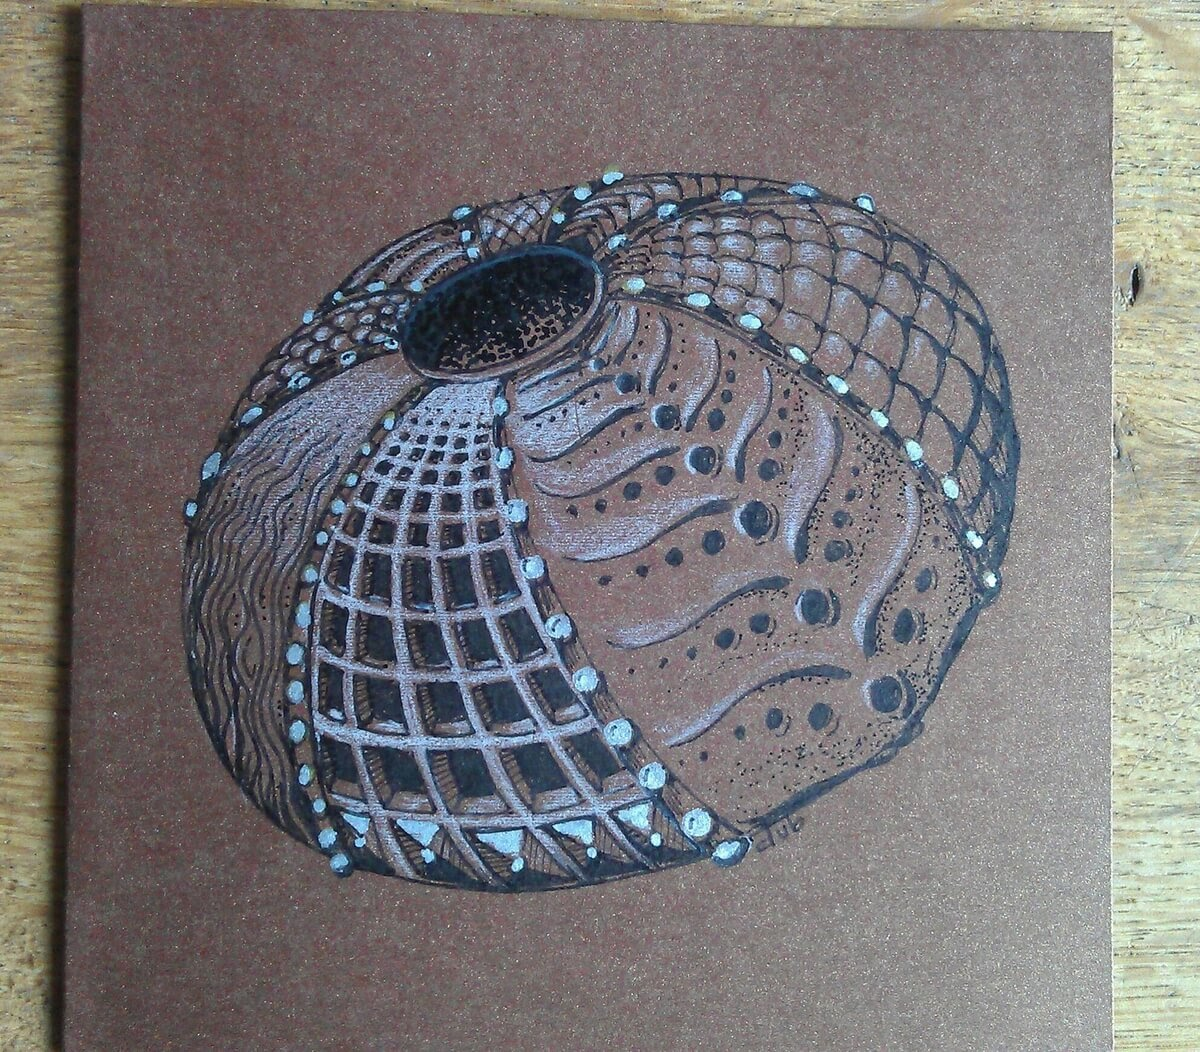 09-Urchin-Doodle-Card-Deborah-Elaborate-Zentangle-Drawings-www-designstack-co